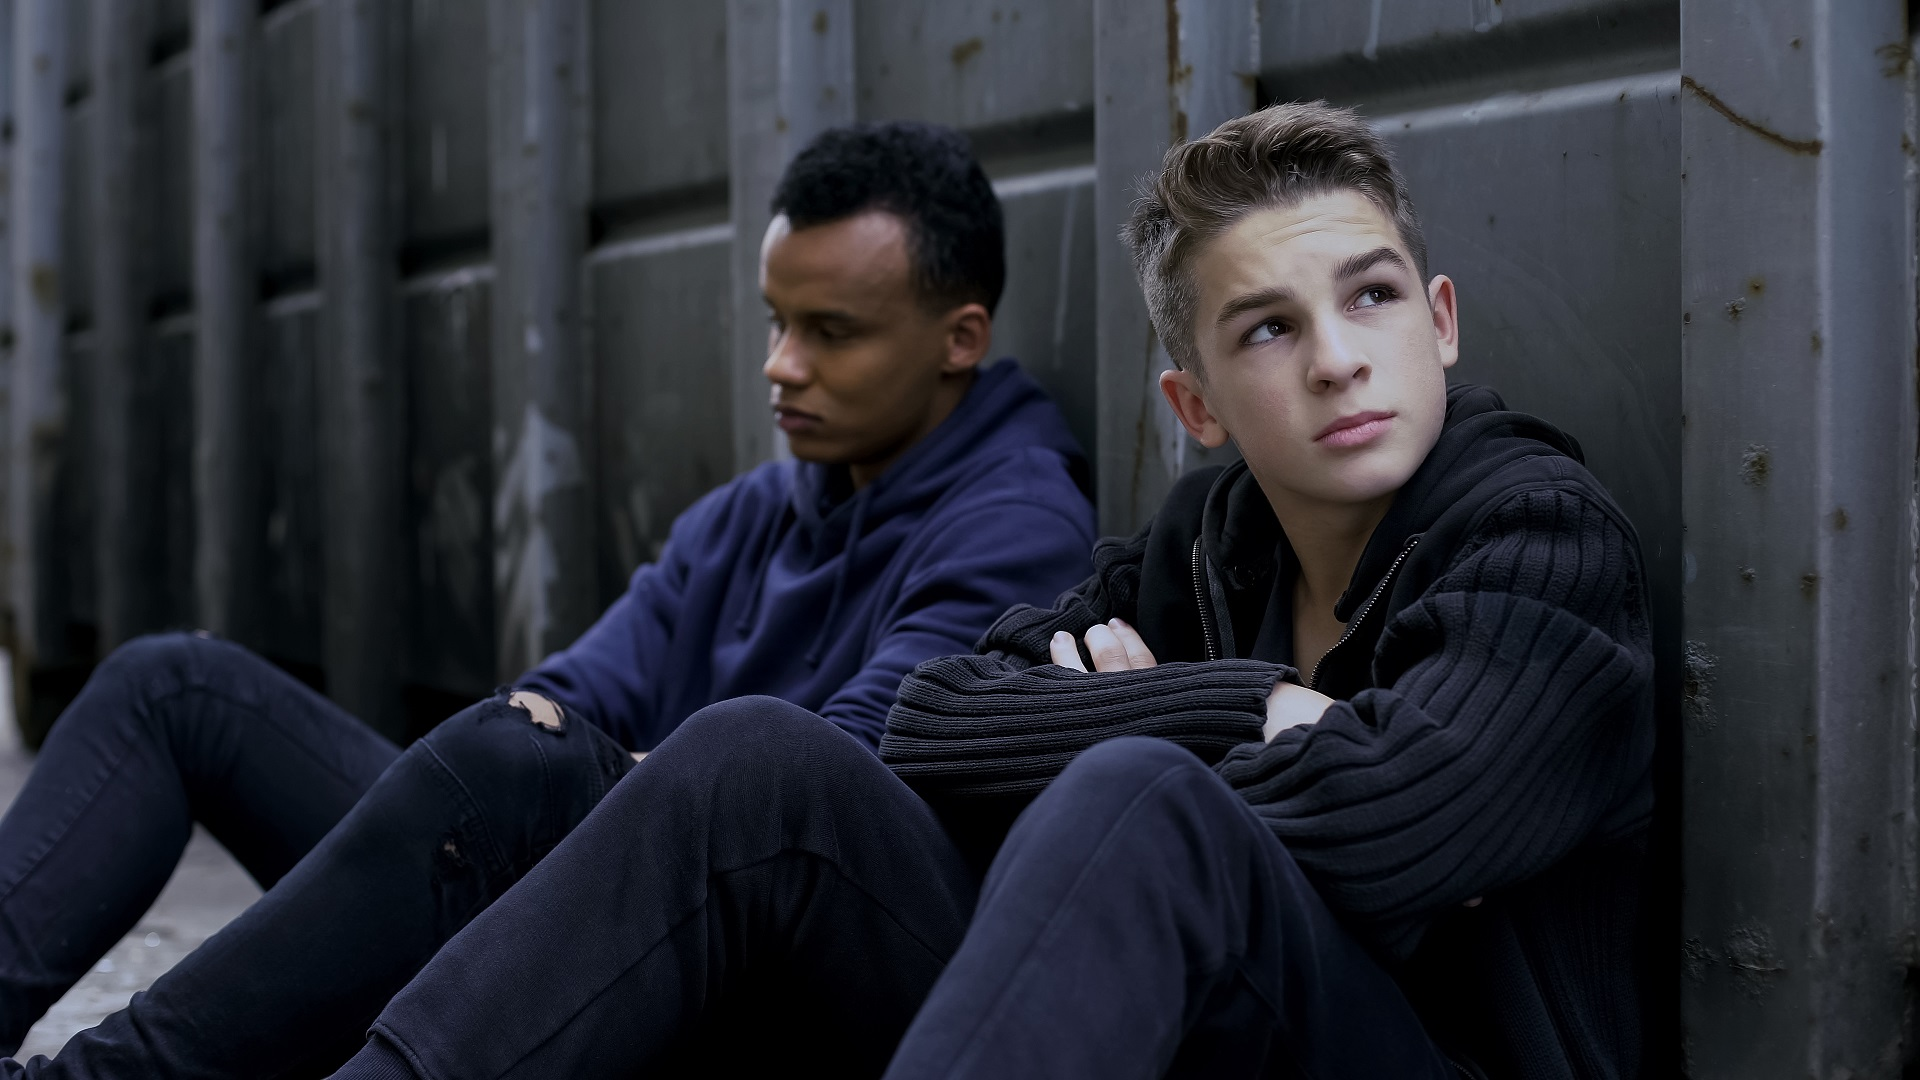 Two teenage boys sitting by a wall